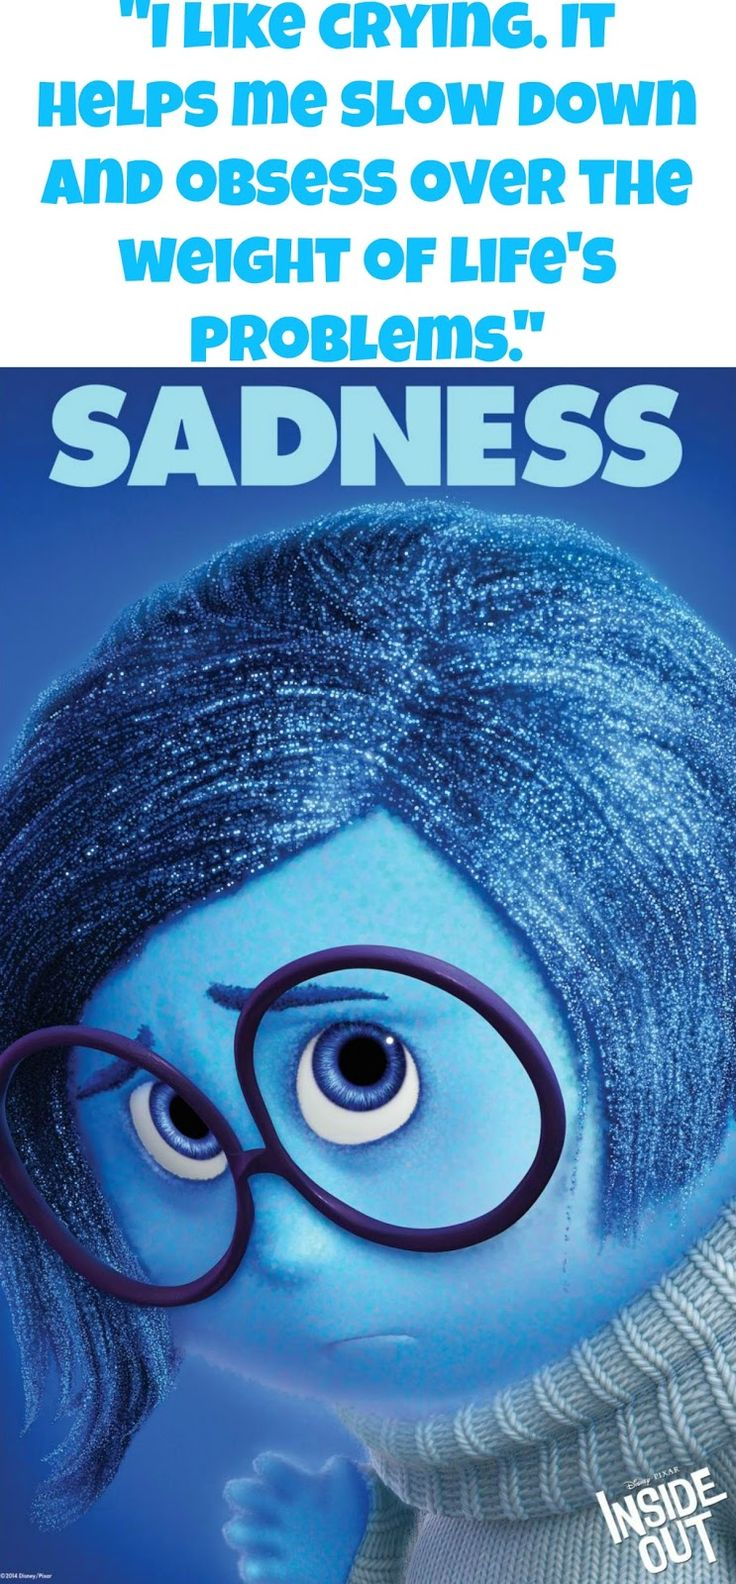 Saying Quotes About Sadness: Best 25+ Sad Disney Quotes Ideas On Pinterest